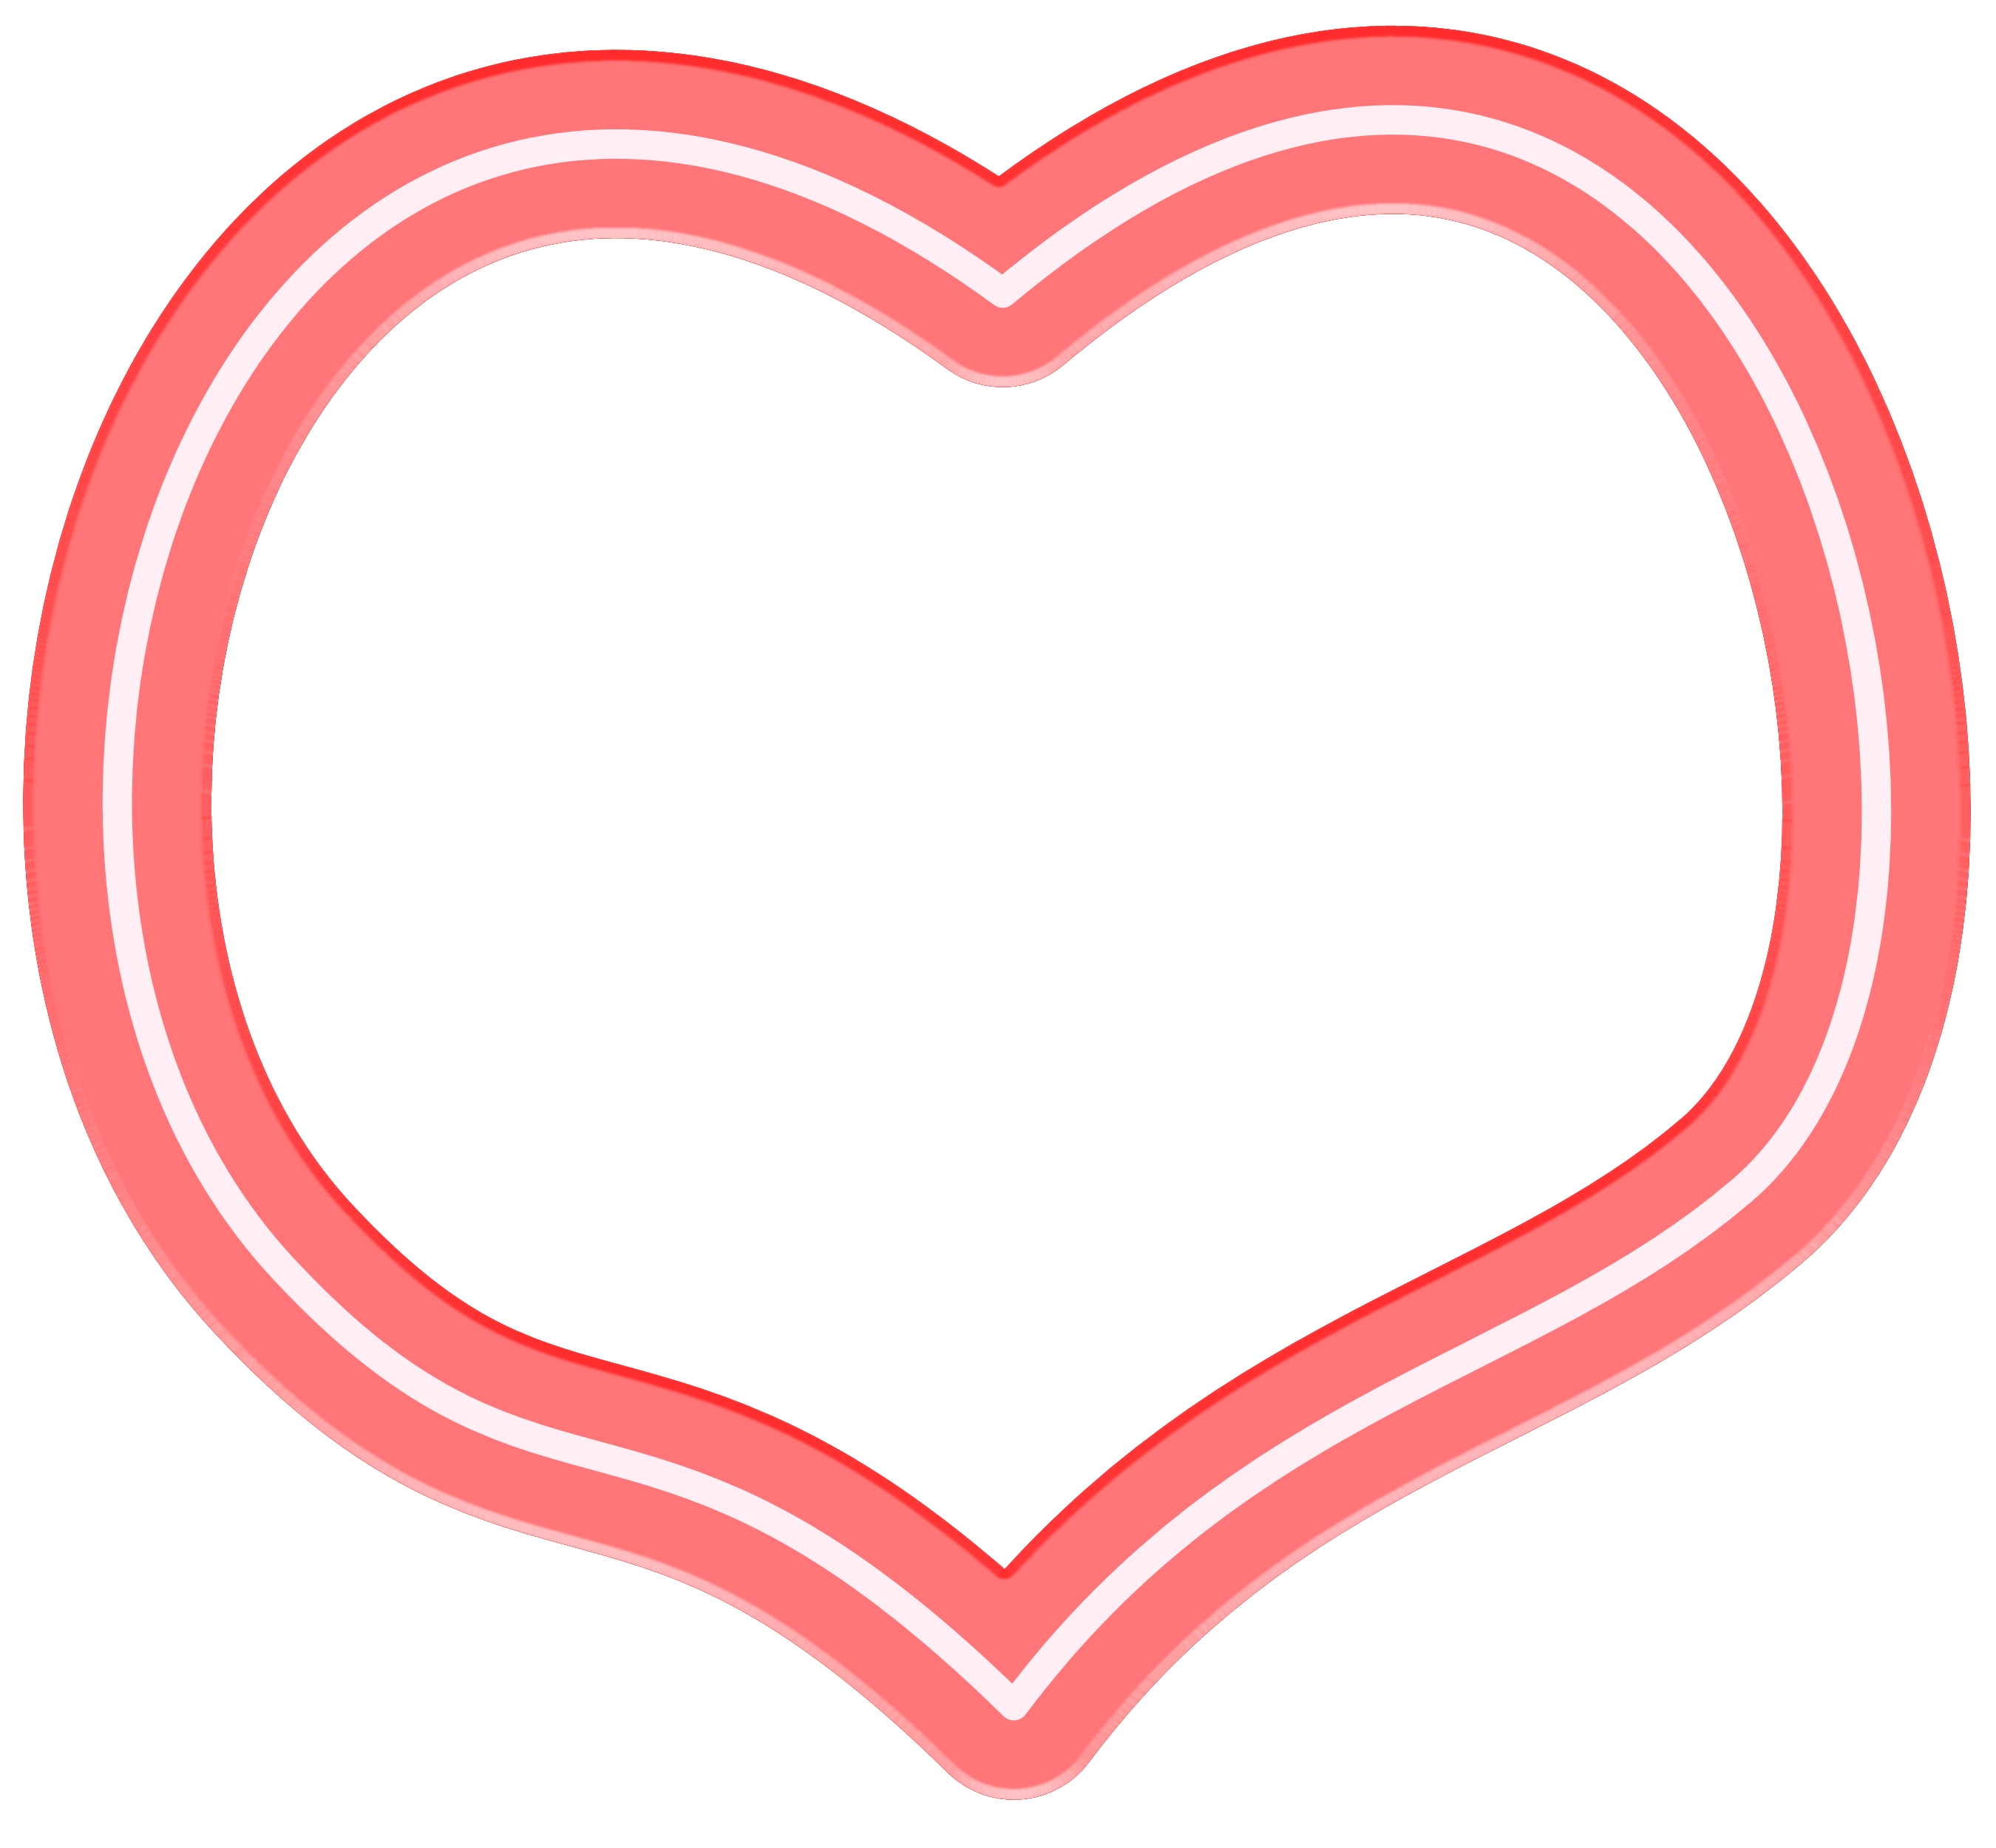 Heart-shaped clipart big Picture Big Download on Free